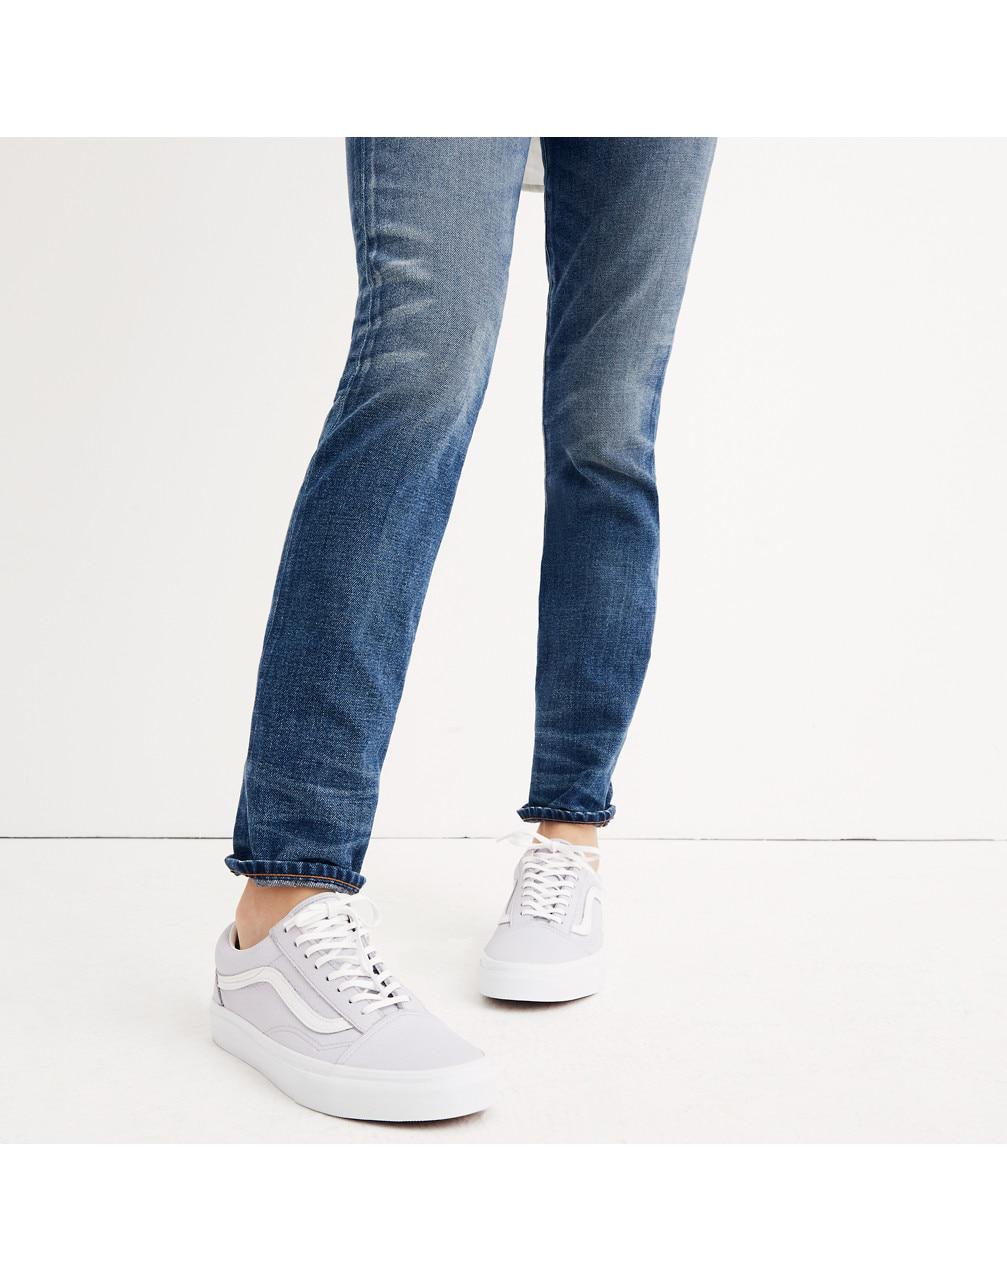 bba8ae5942 Lyst - Madewell X Vans Unisex Old Skool Lace-up Sneakers In Tumbled ...